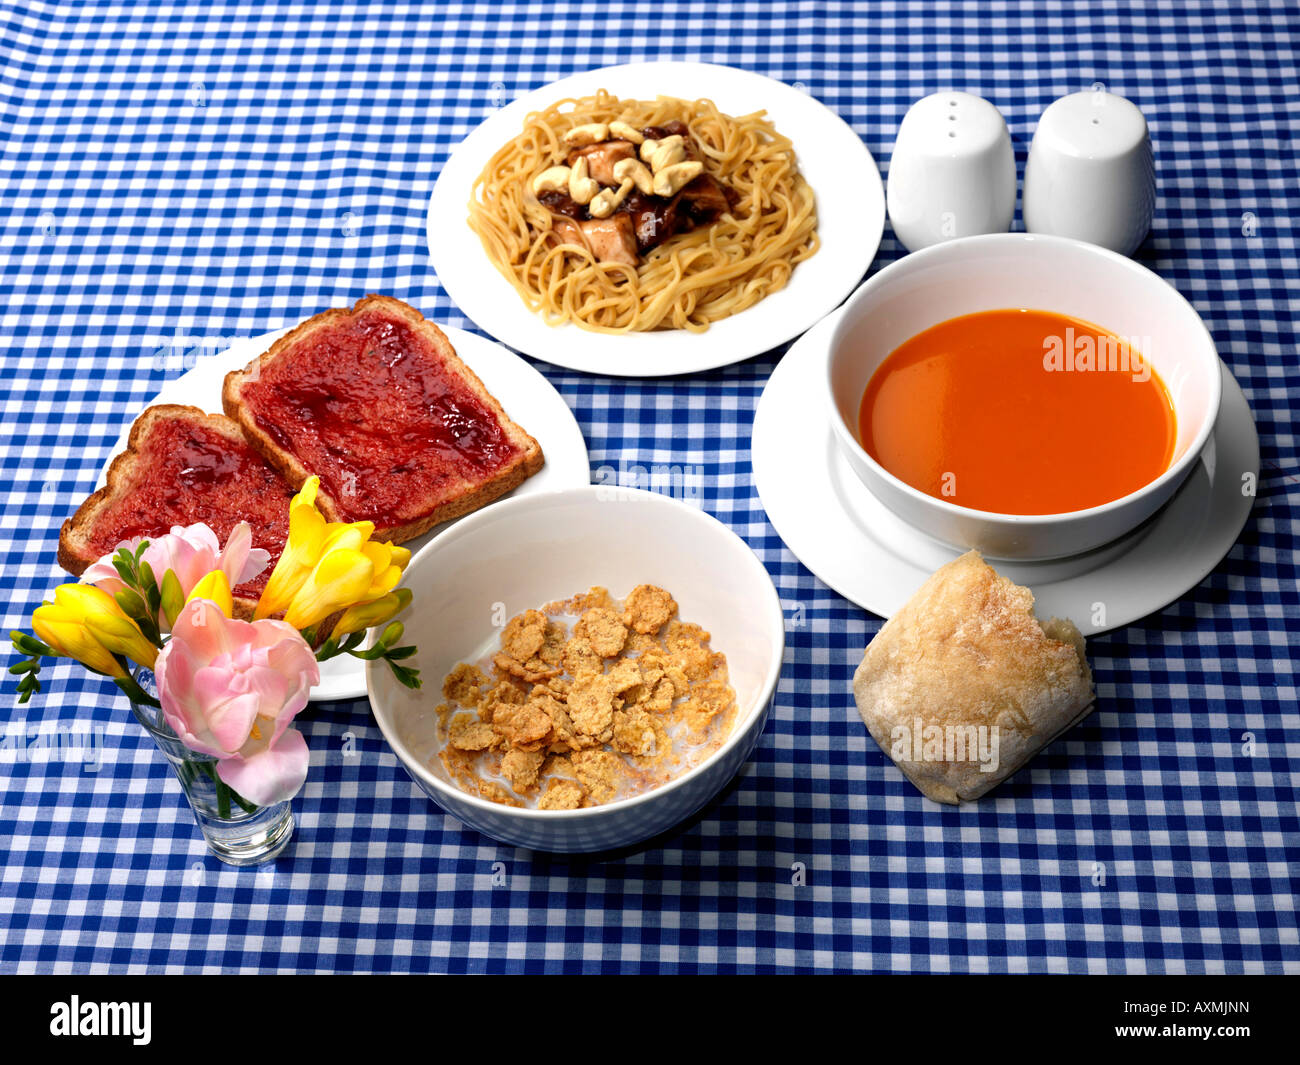 Breakfast and Lunch - Stock Image